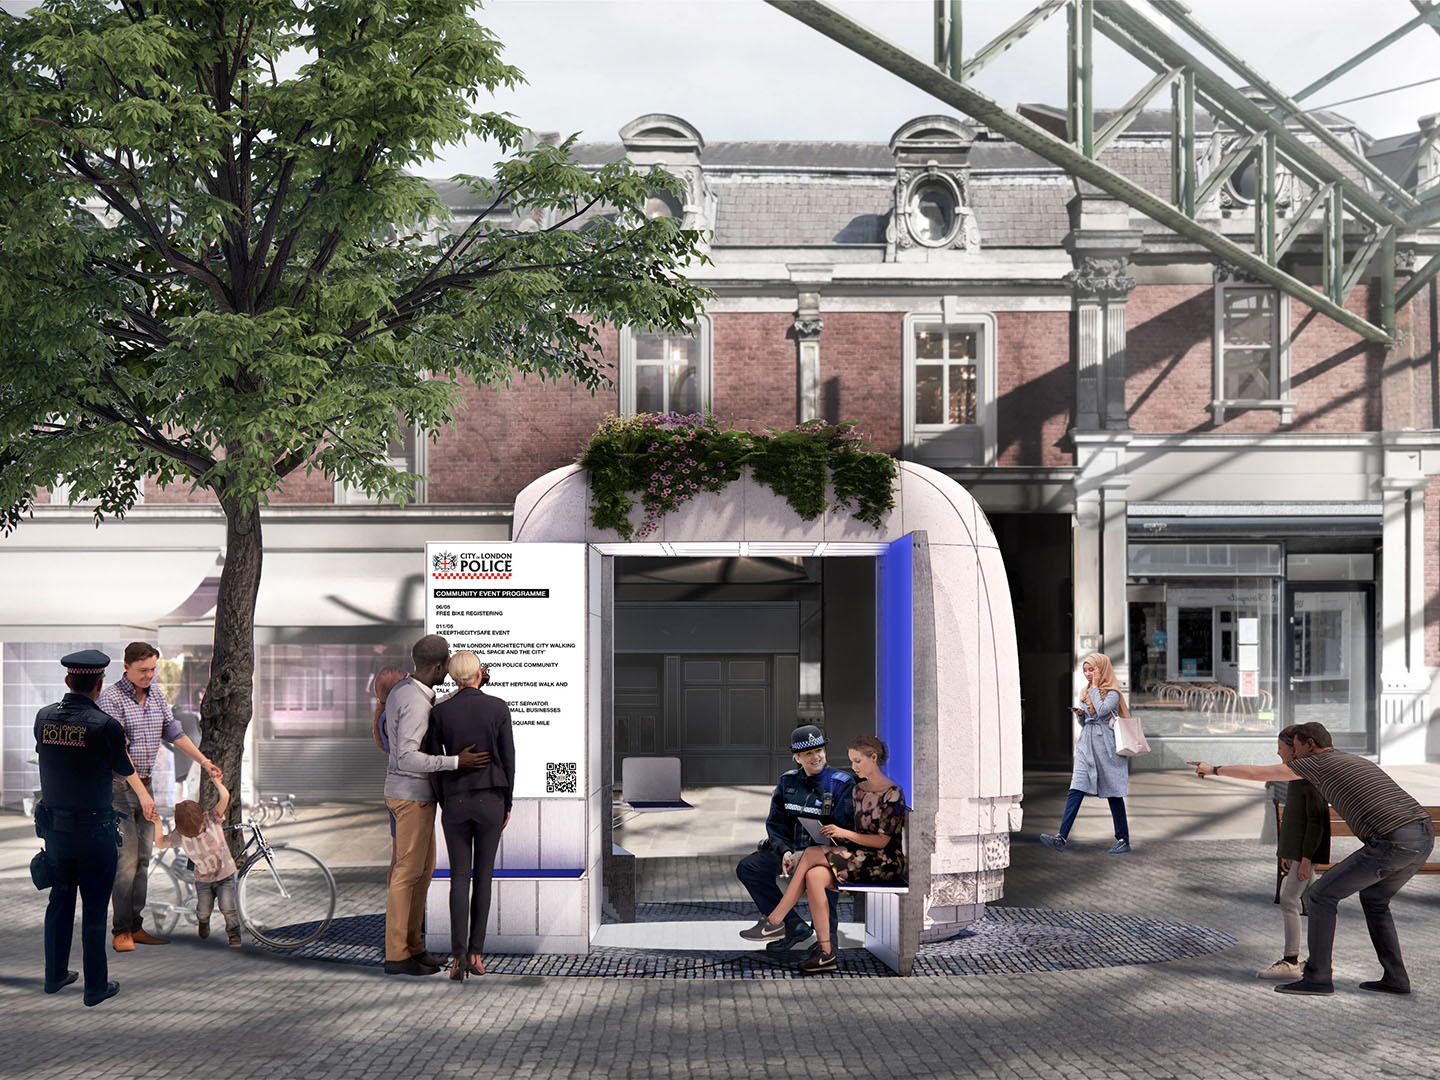 Winning design for 21st Century Police Box in the City of London unveiled